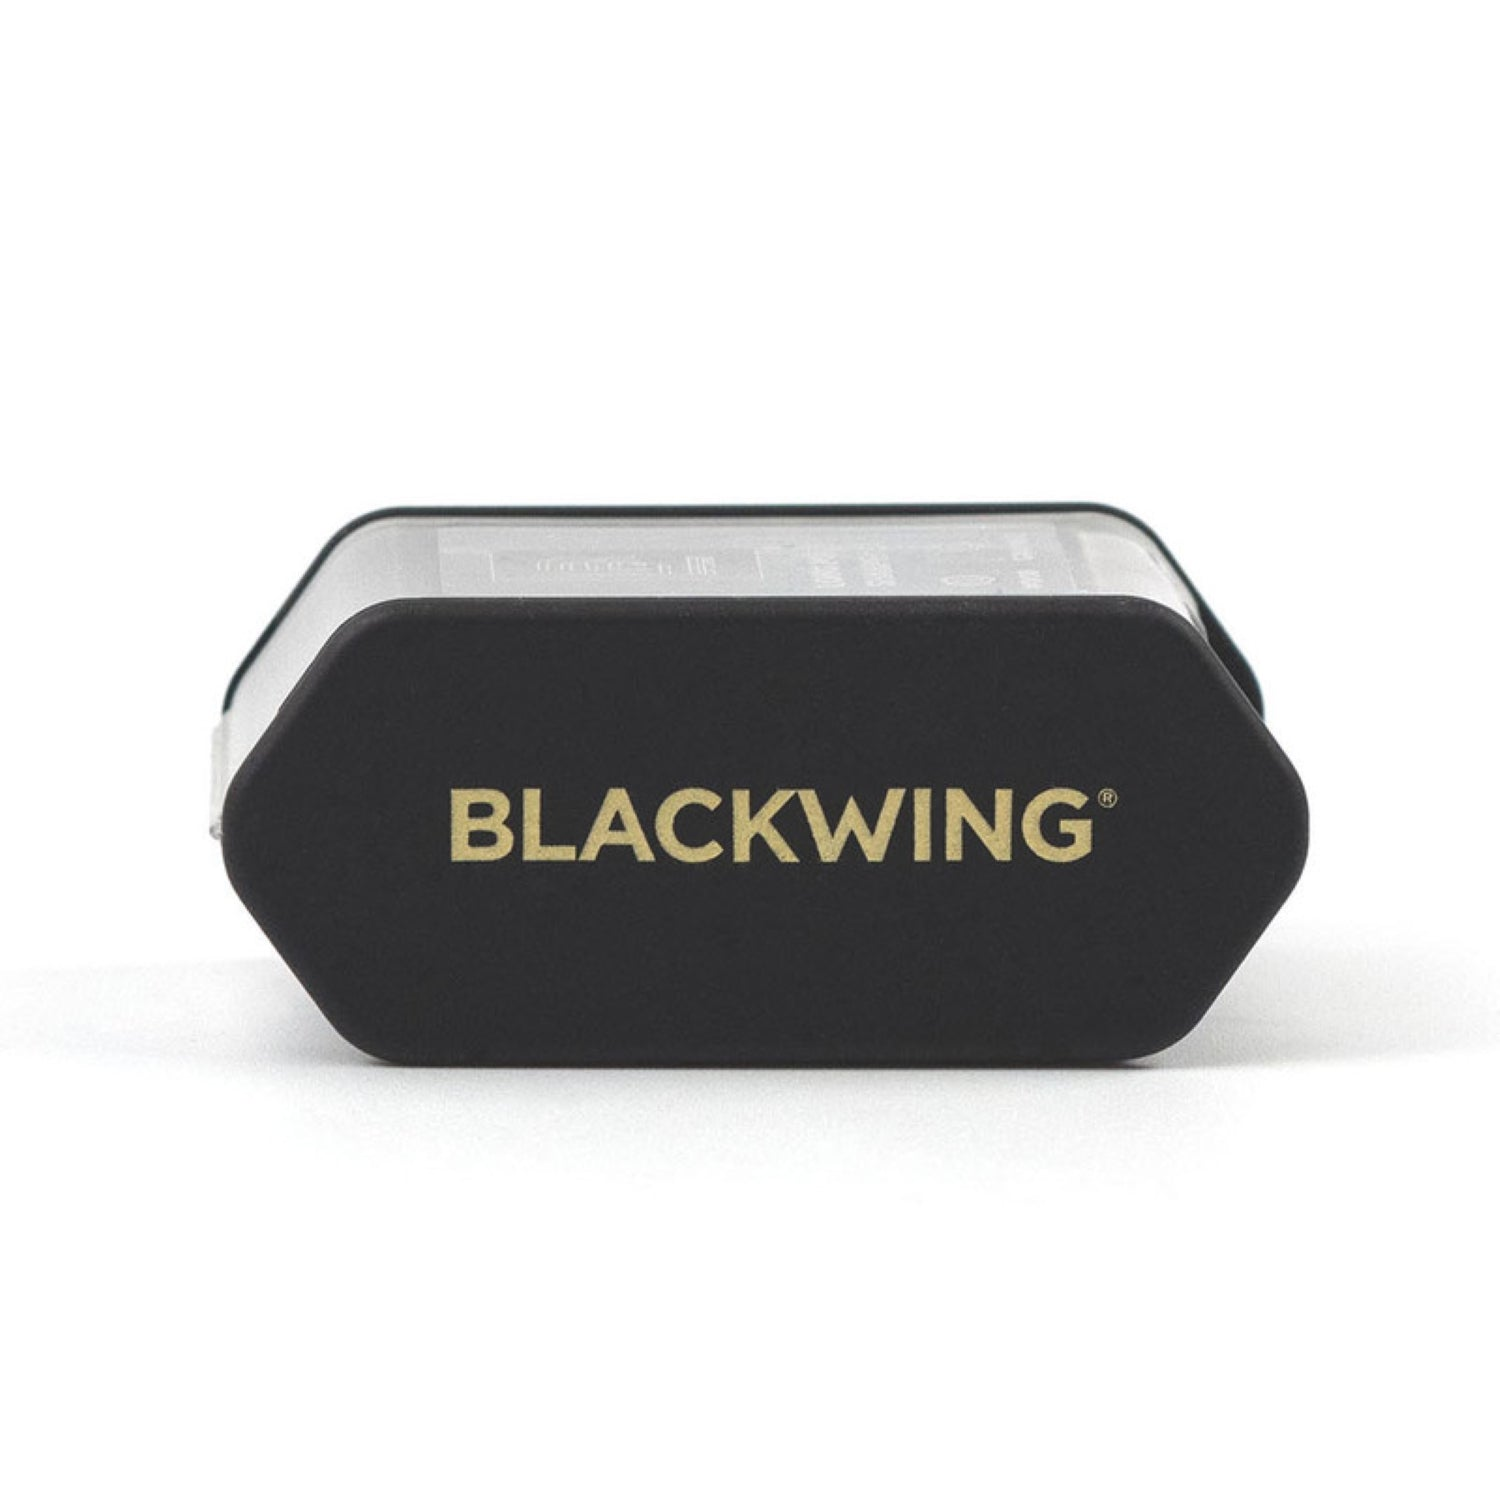 Blackwing - Two-Step Pencil Sharpener - Black